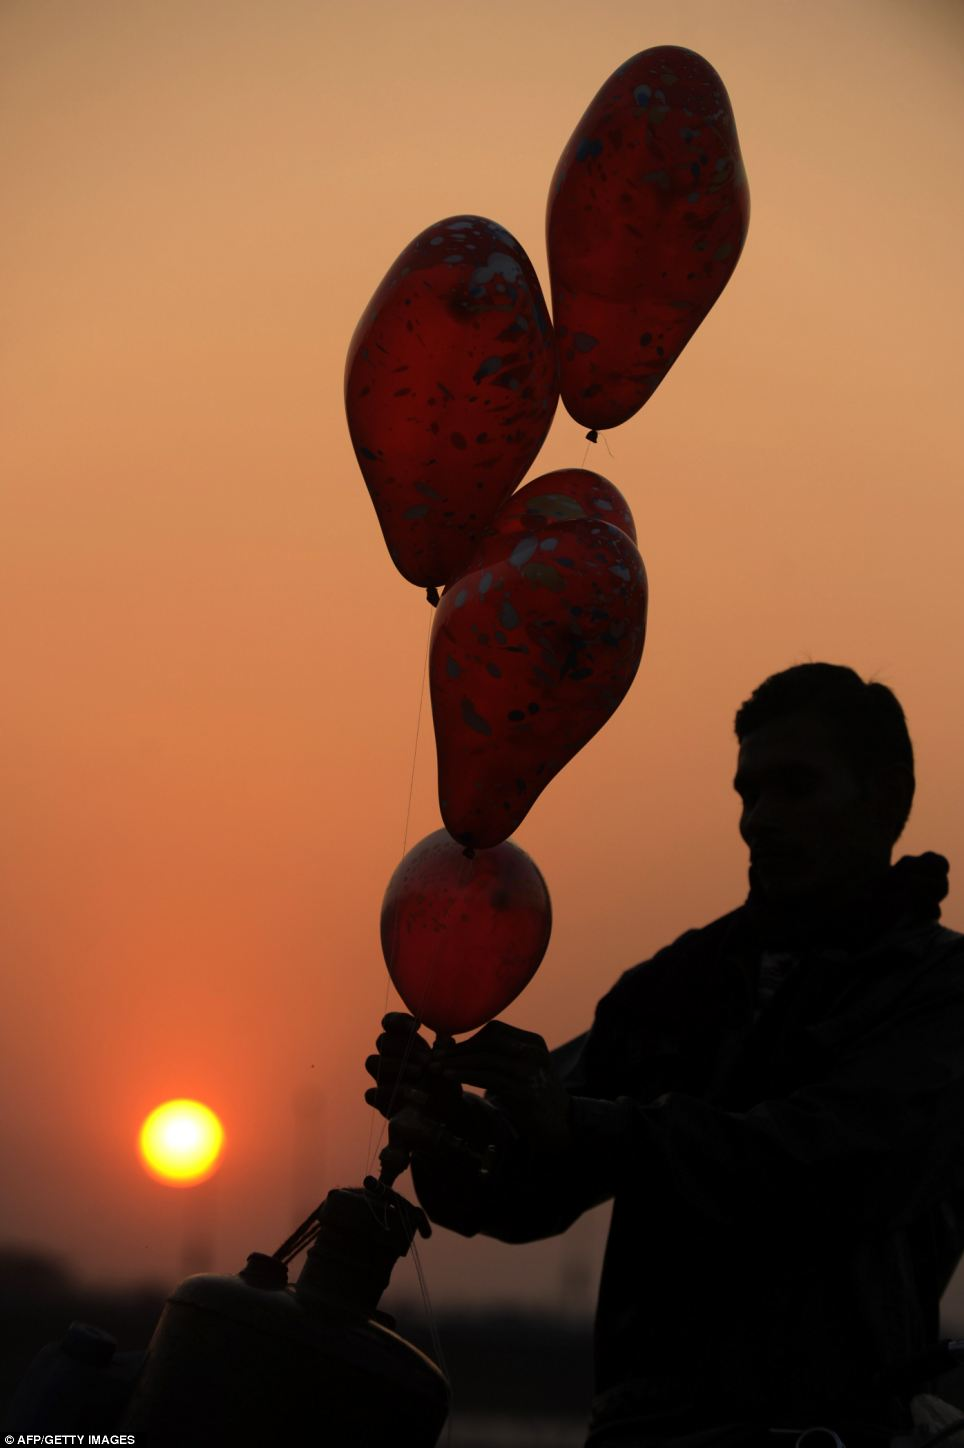 An Indian vendor inflates balloons as the sunsets in Siliguri, West Bengal, India